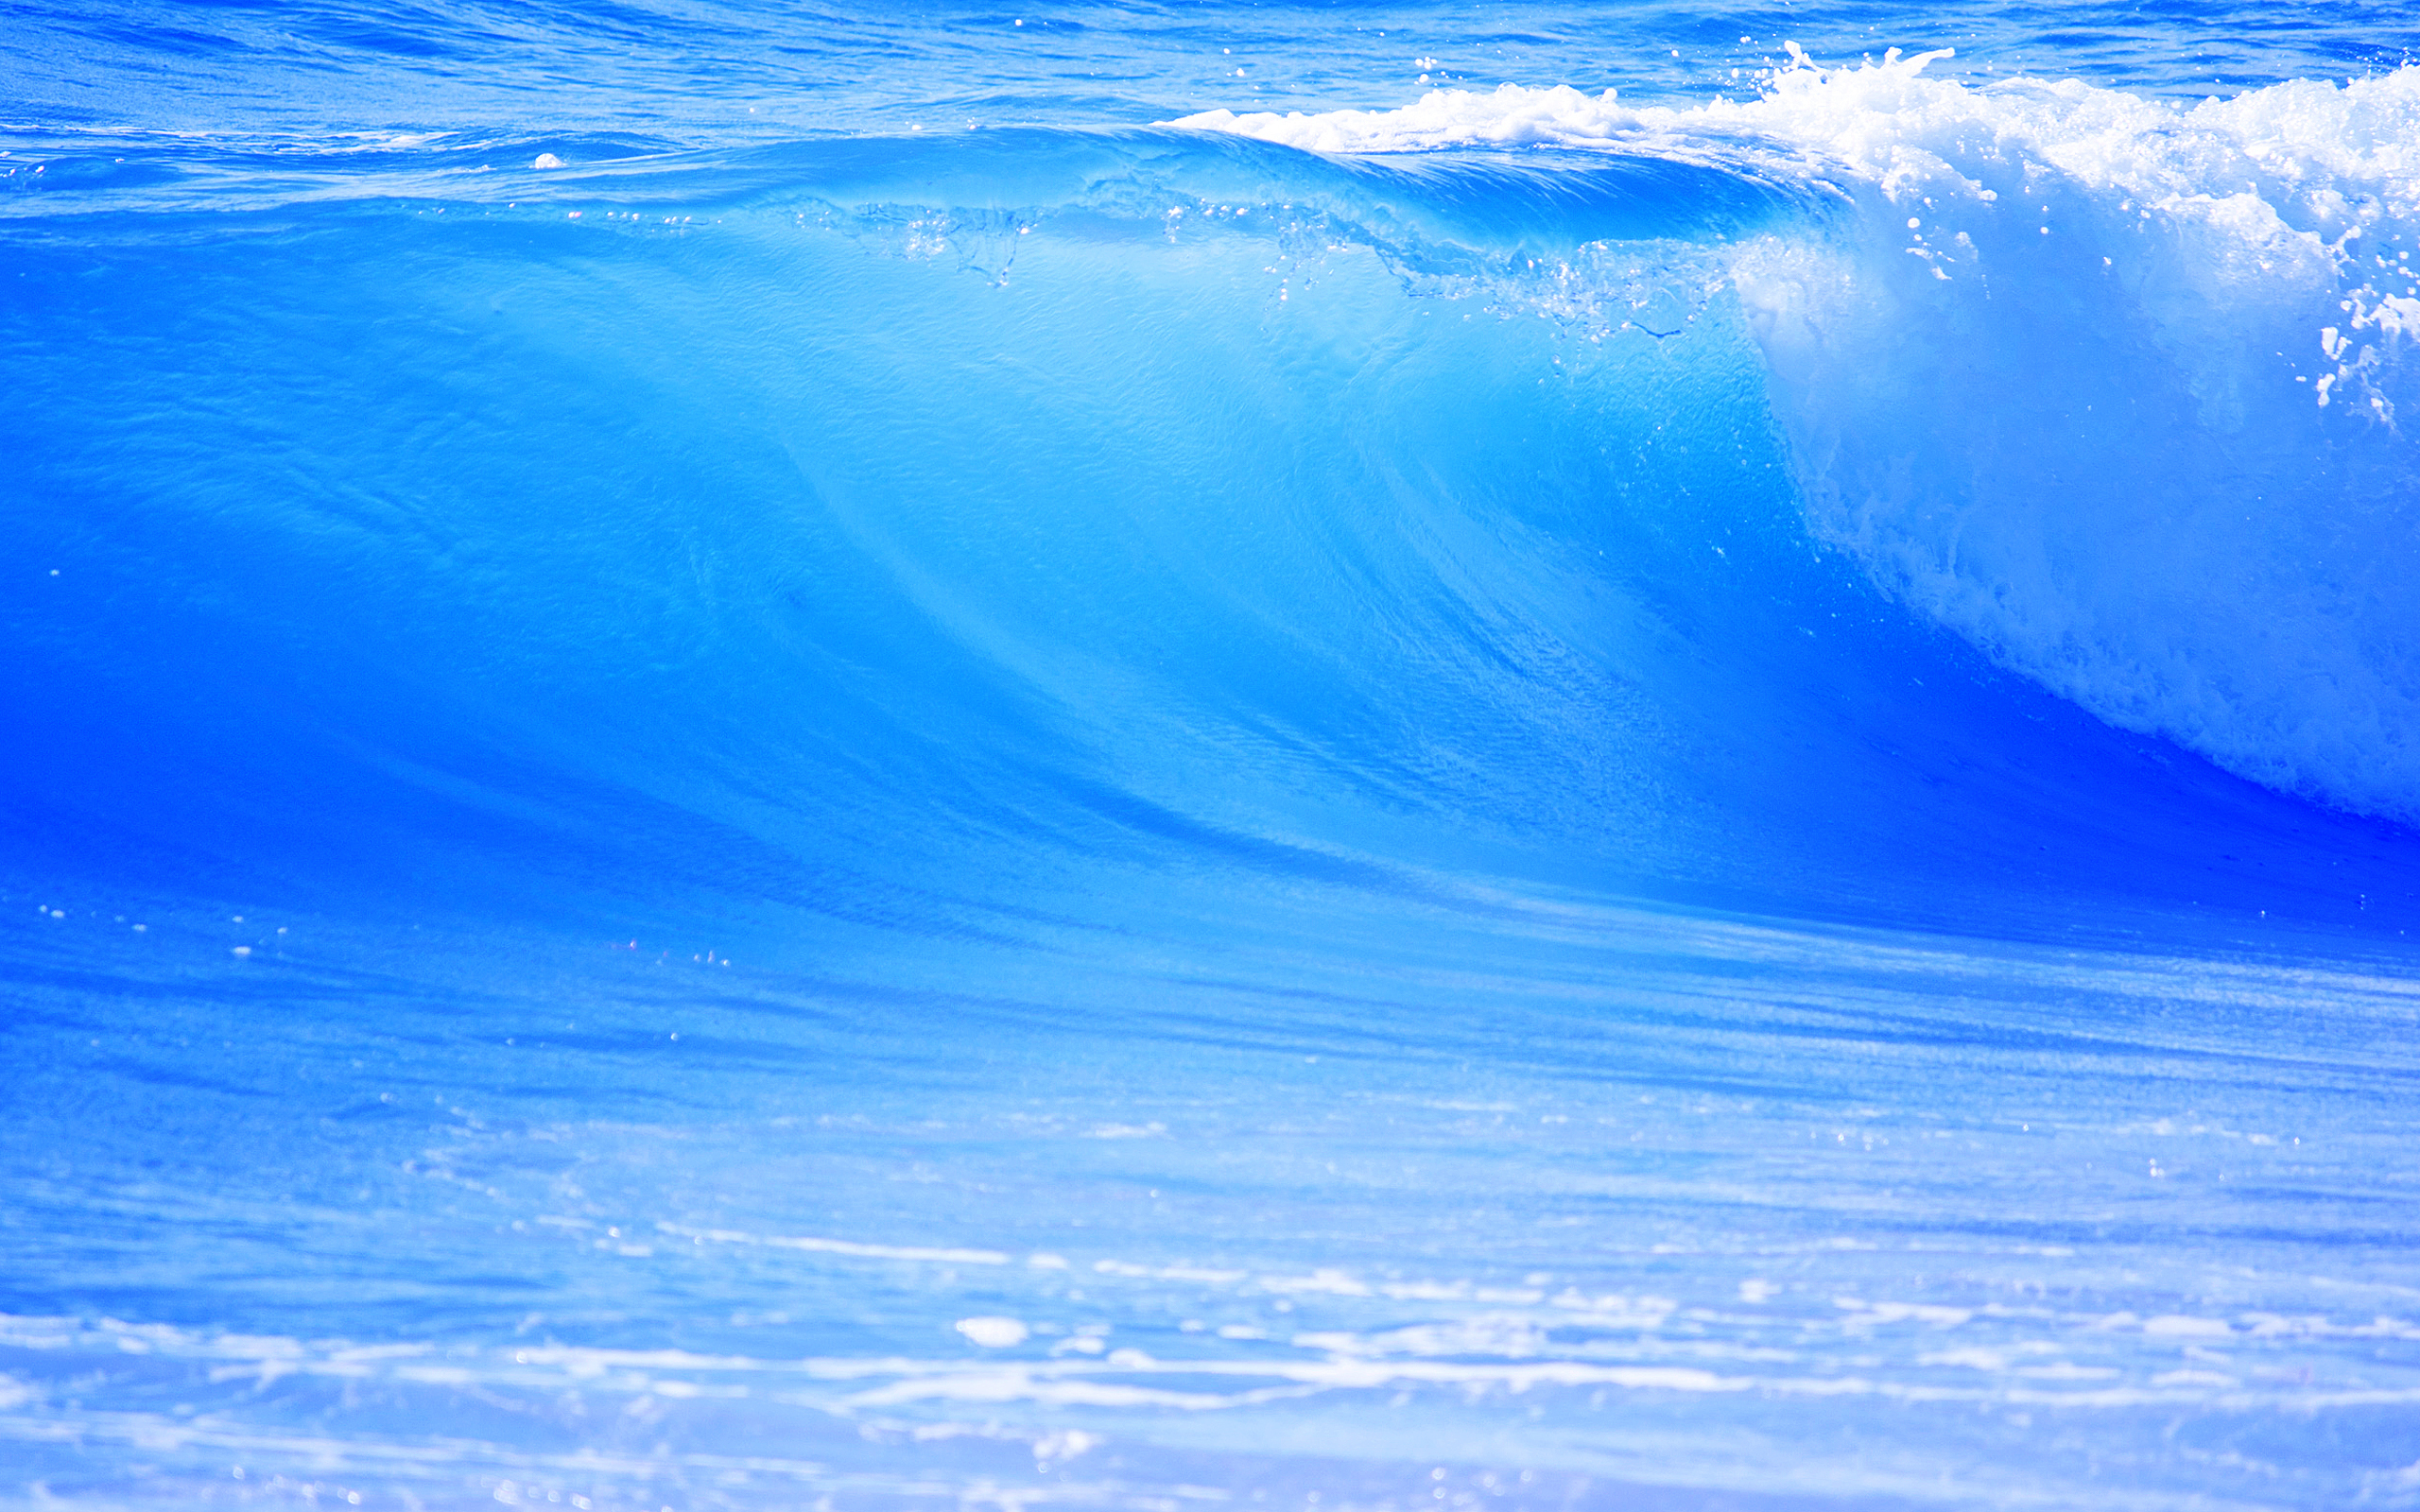 wave wallpaper free